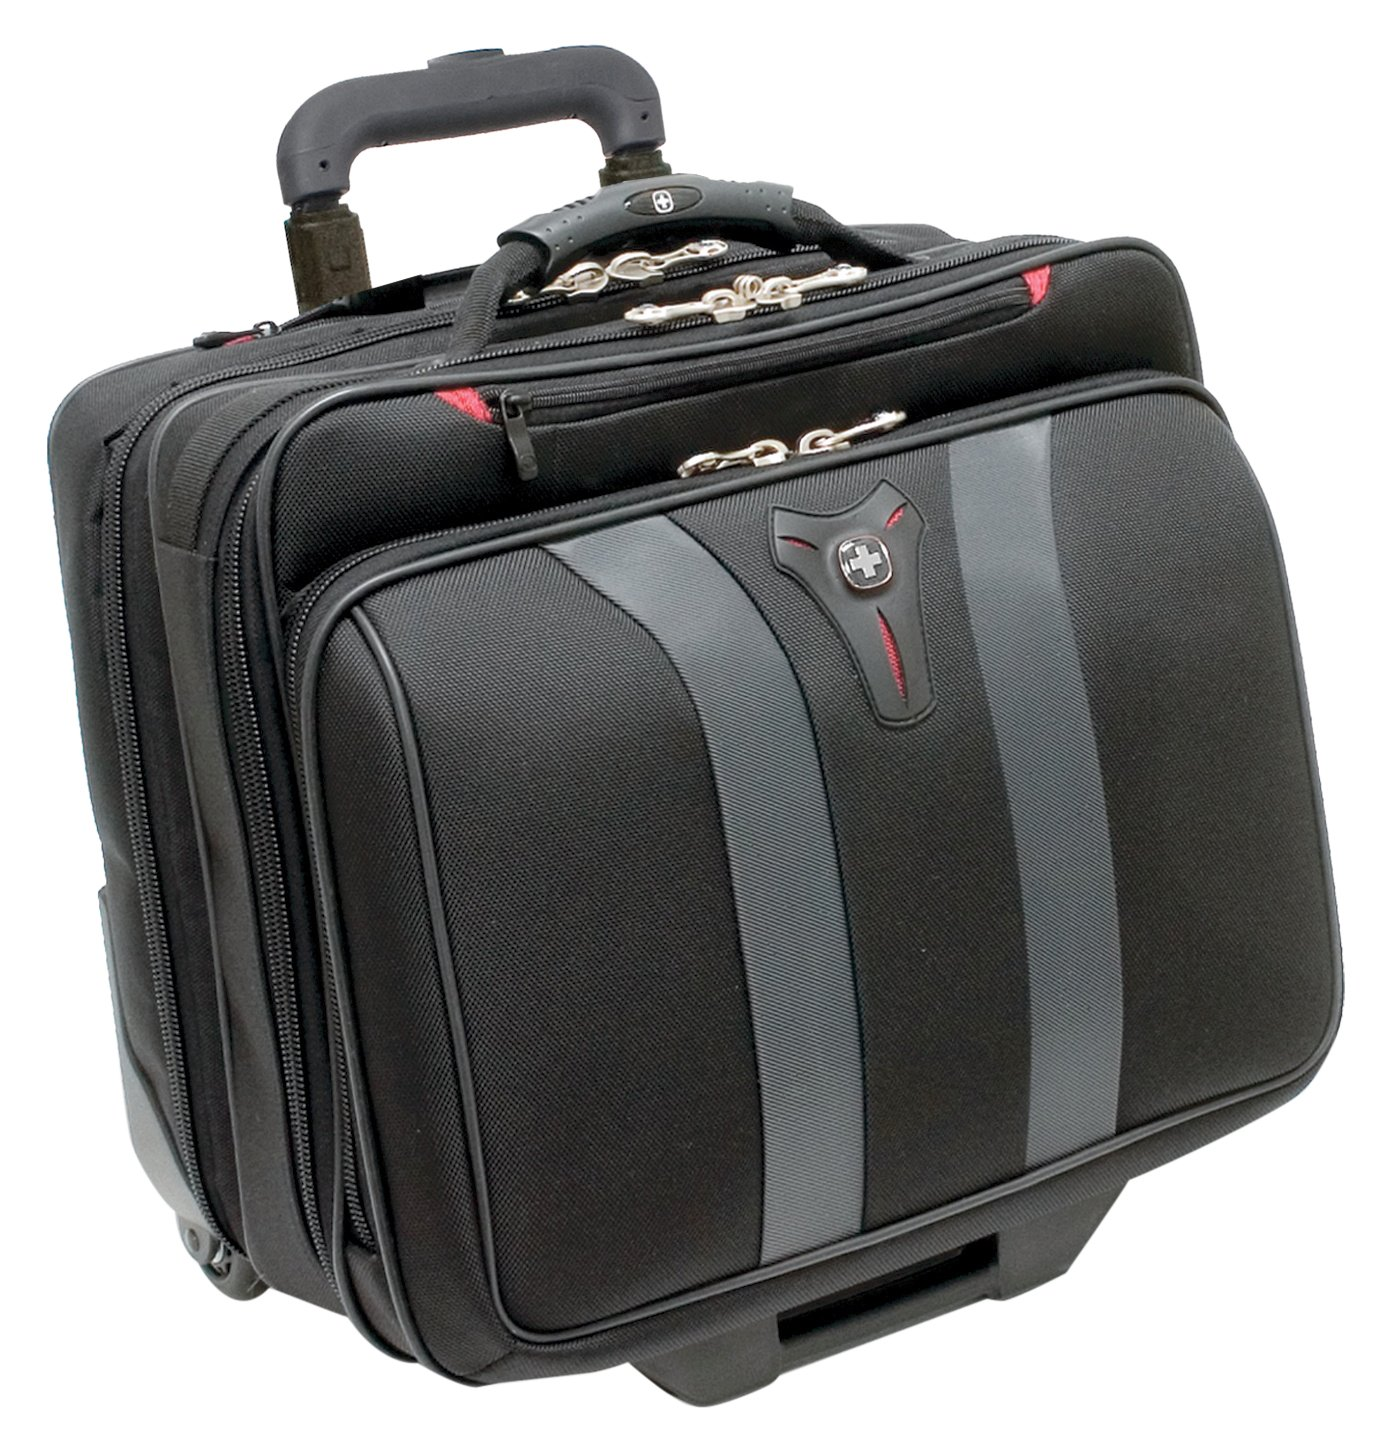 Swissgear Granada Rolling Case Nylon for Upto 17-Inch Notebooks - Black Trg - Swiss Gear GA-7011-14F00